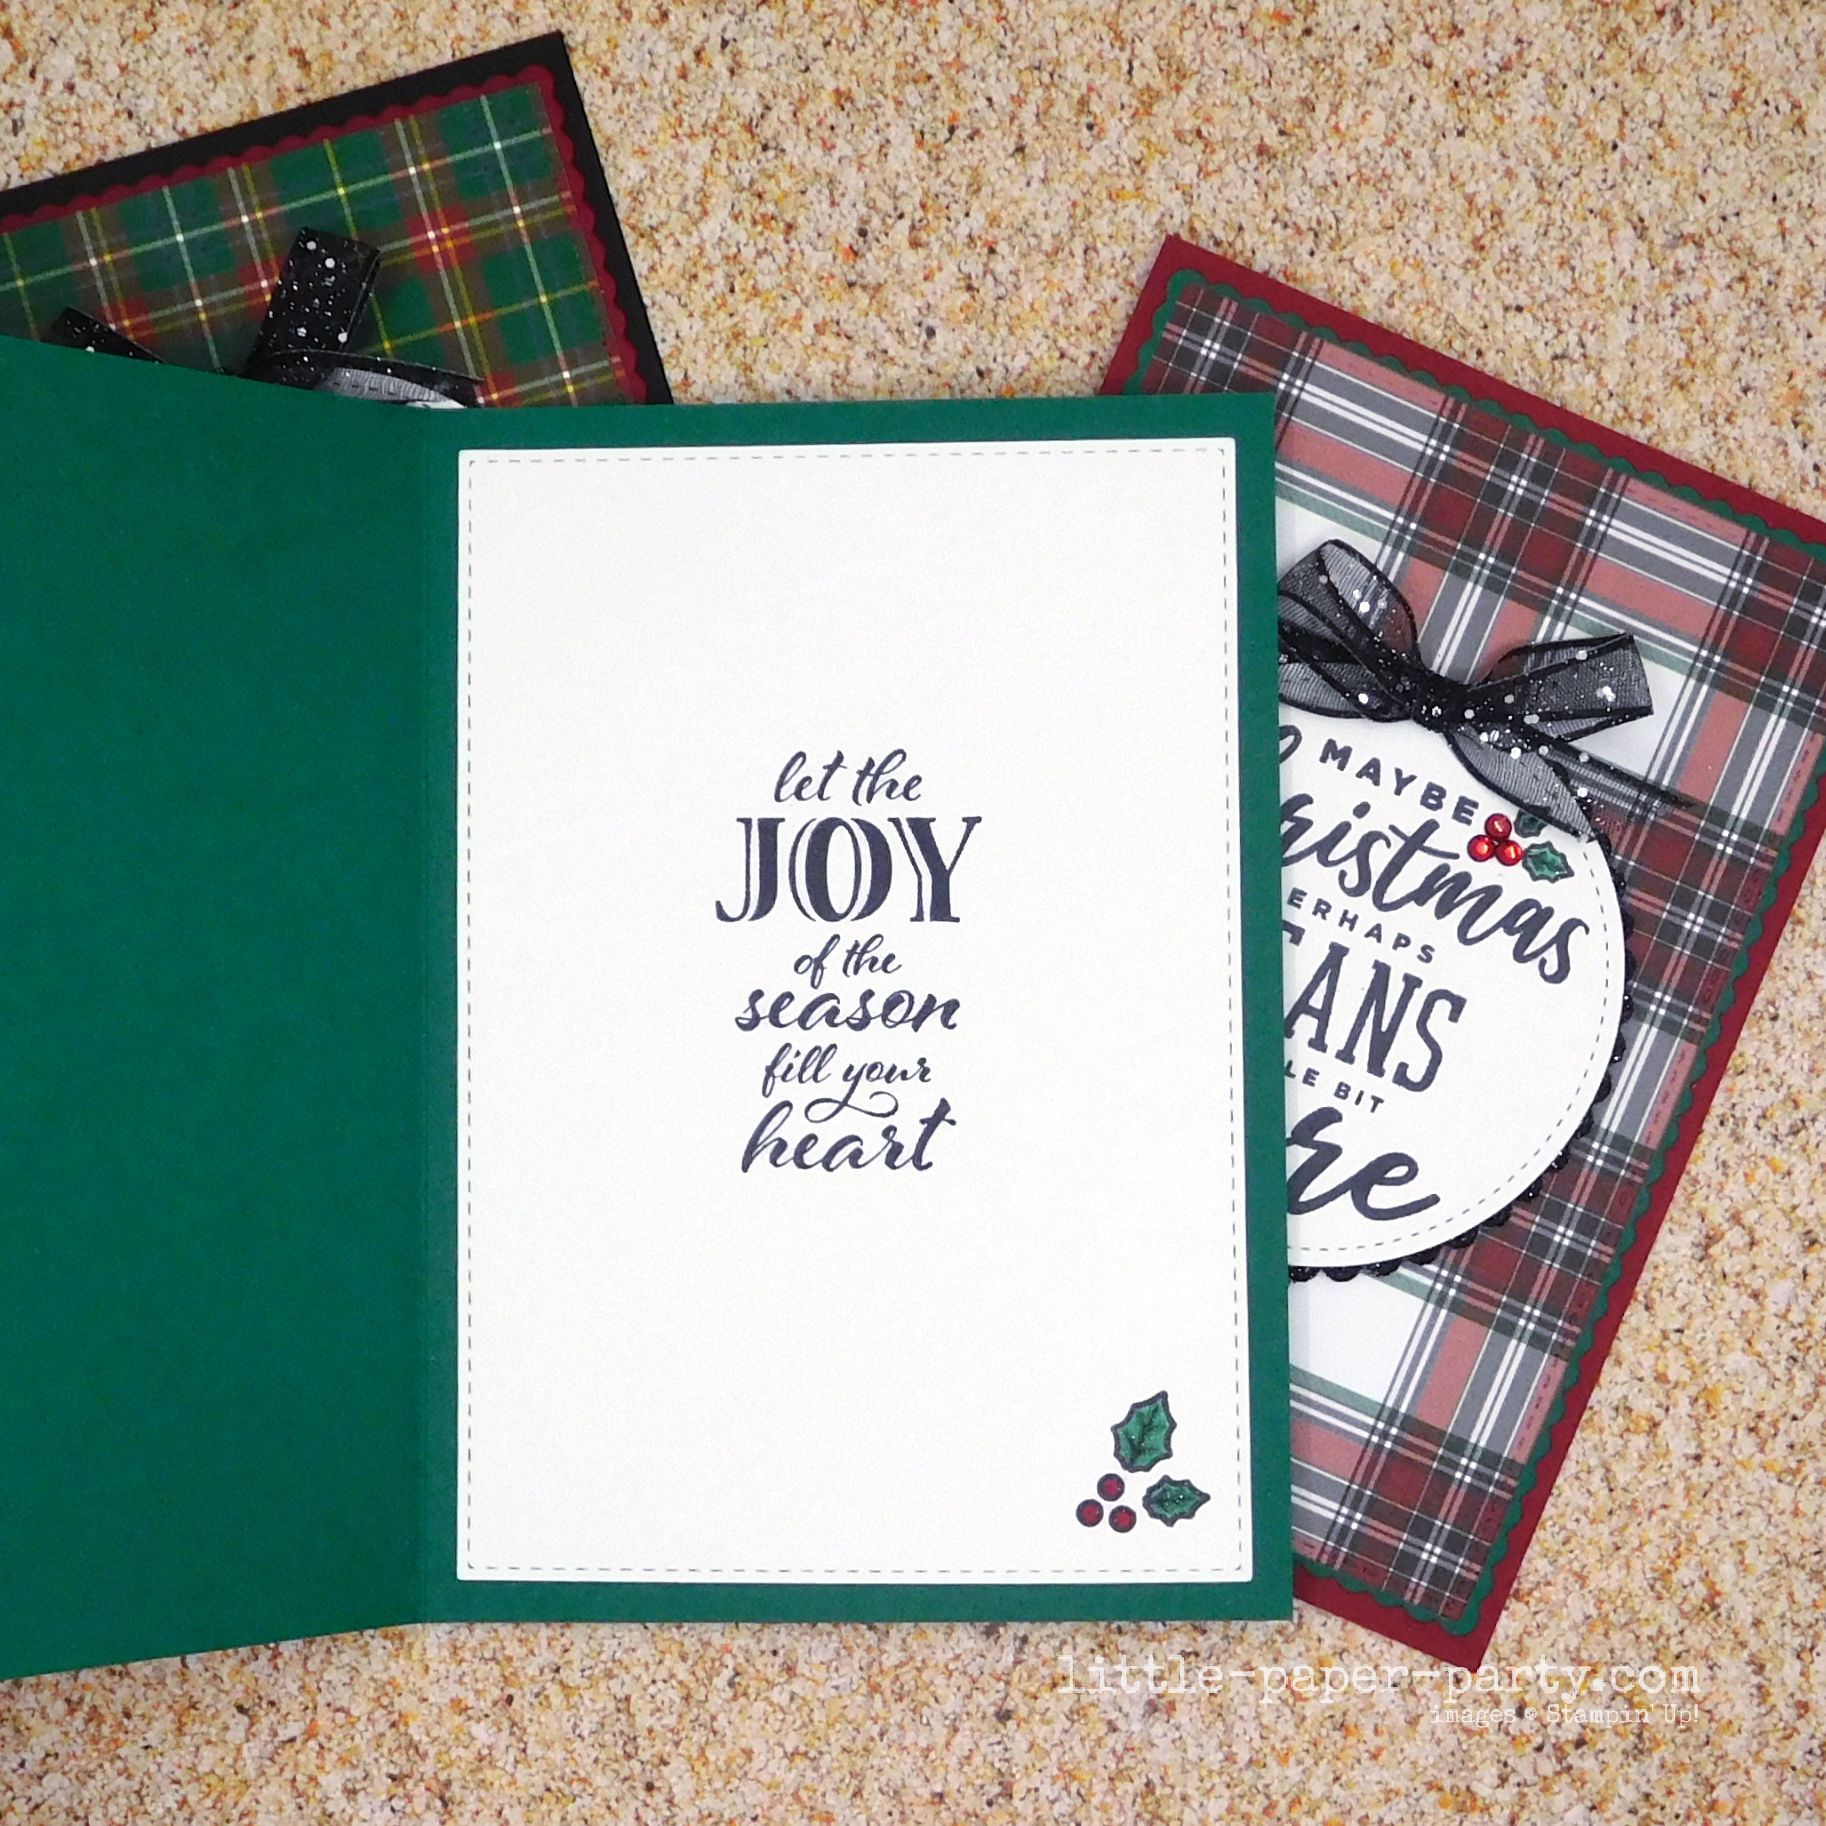 Little Paper Party, 12 Days of Christmas 2020 - Stamp-A-Stack #1, 4.jpg